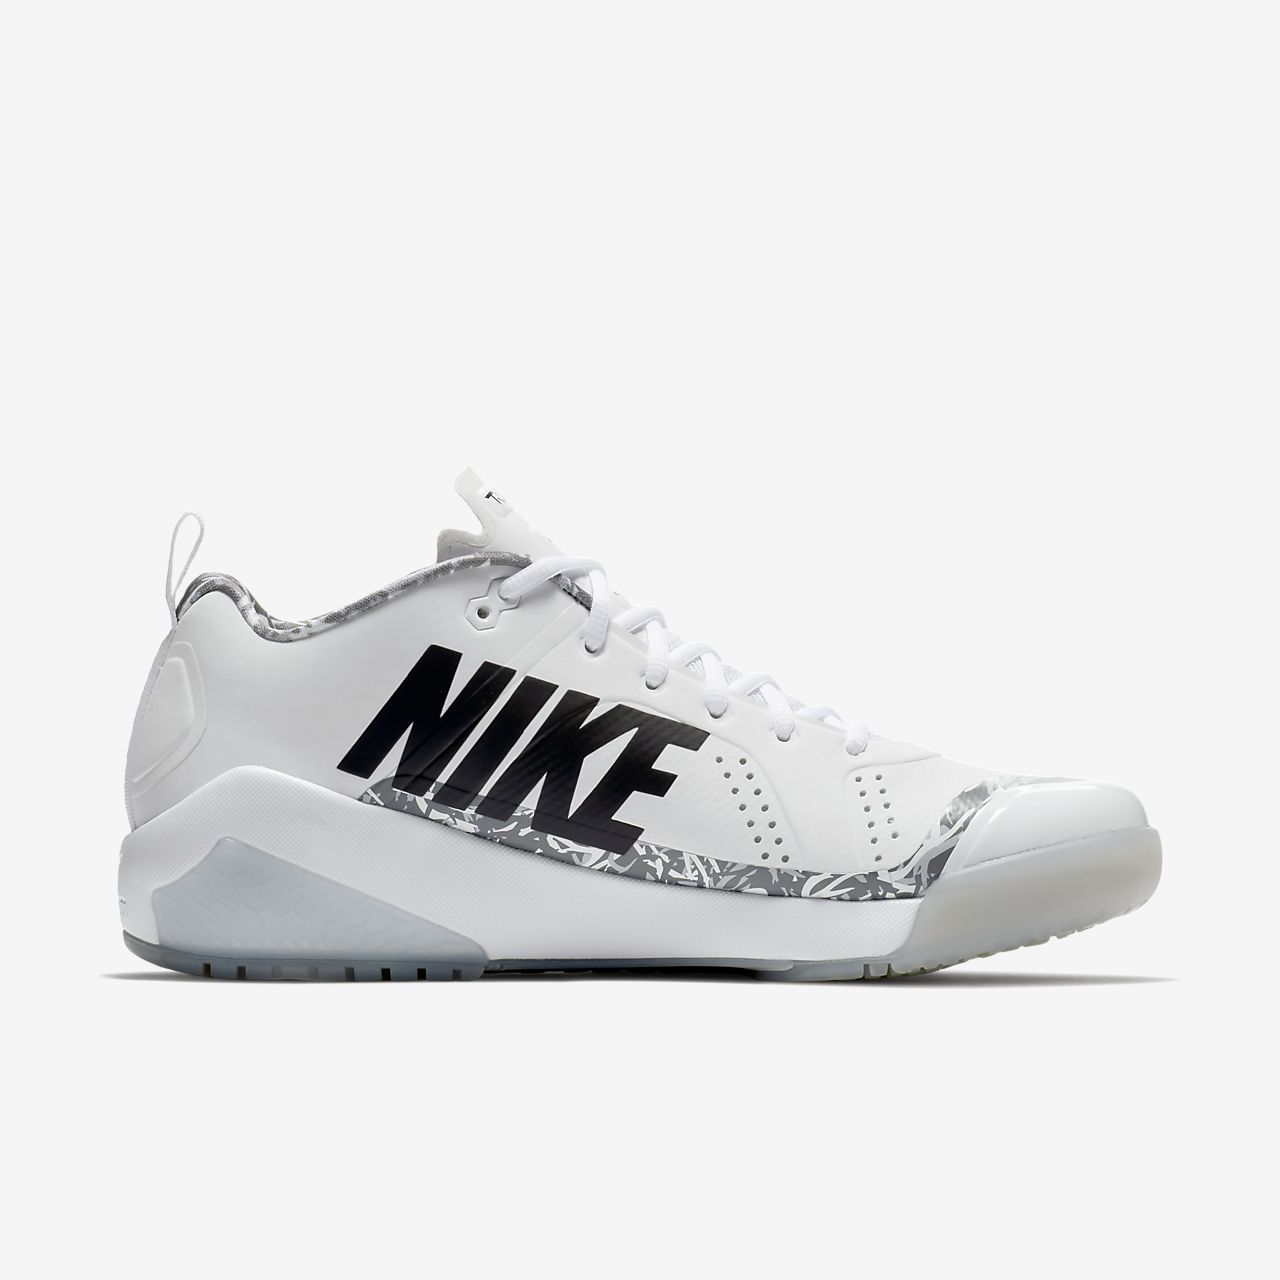 24e0b448cb8ee Nike Air Zoom Baseball Turf Shoes